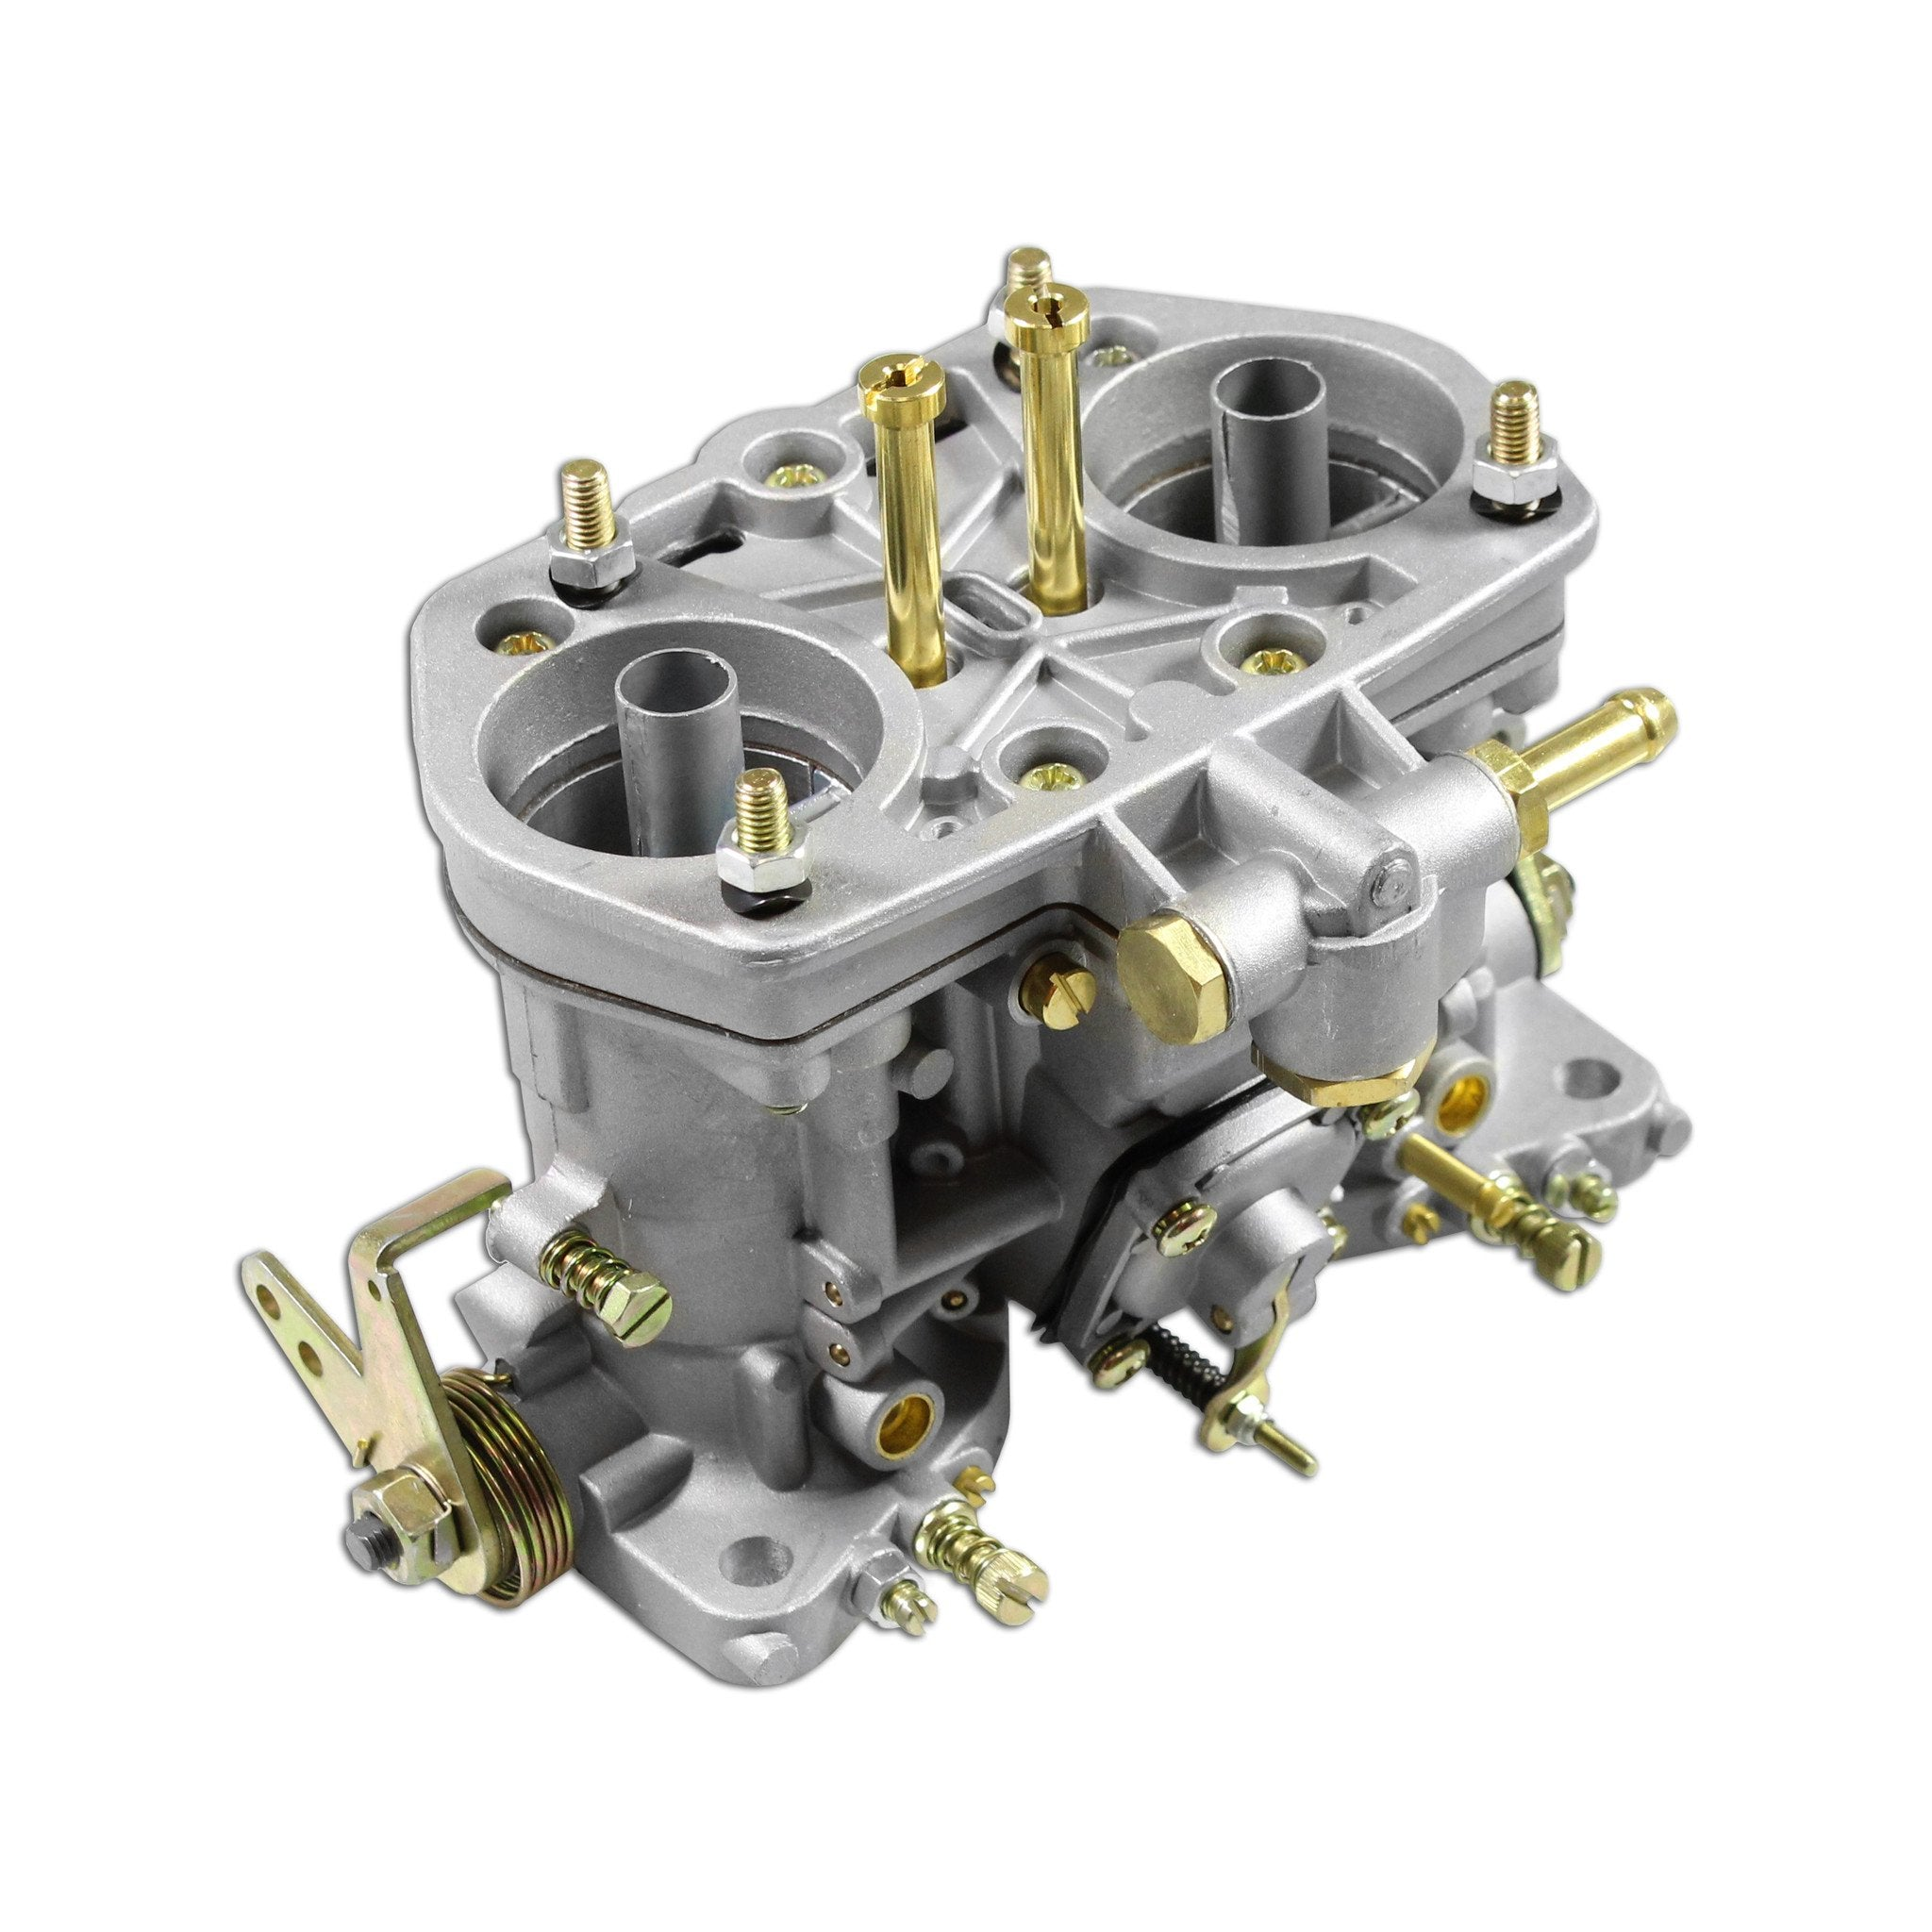 VW IDF 44mm Carburetor